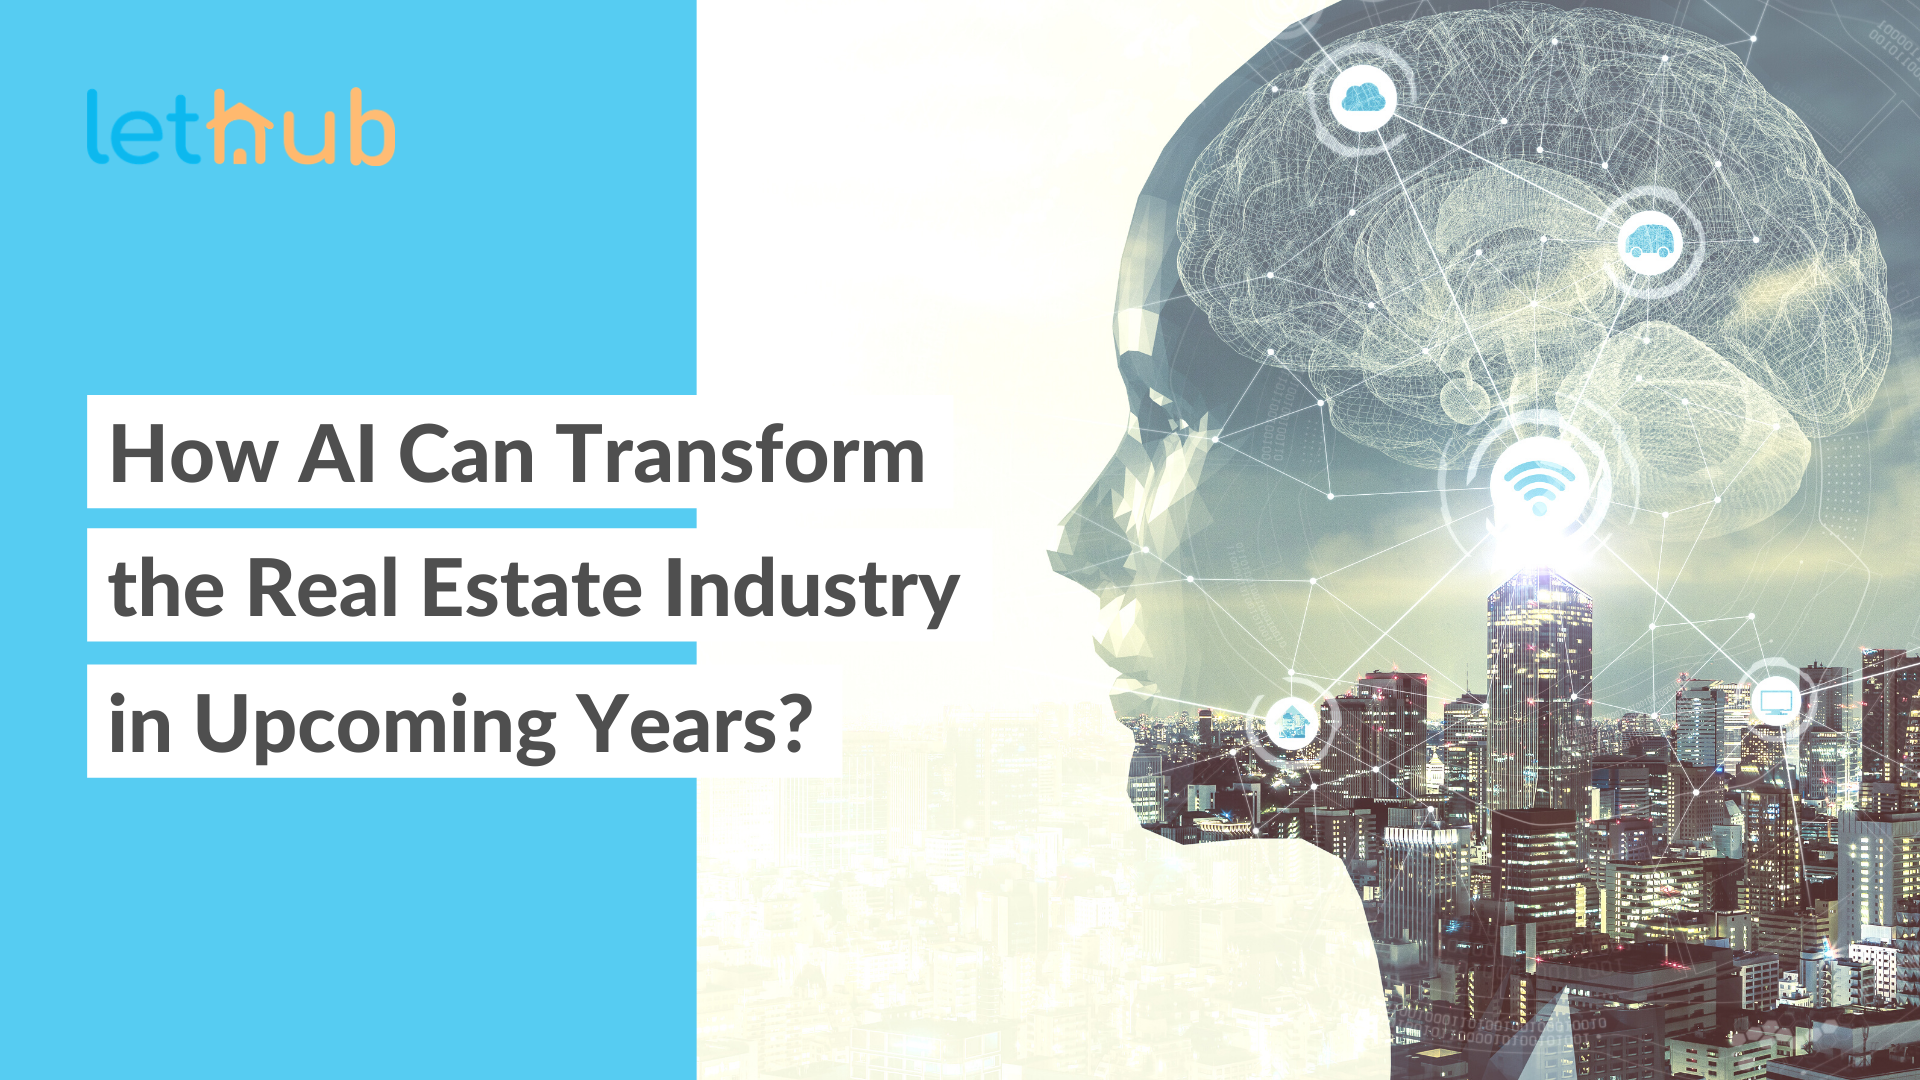 Artificial Intelligence in the Real Estate sector is designed to complement existing software or processes to increase operational efficiency and streamline your business operations. Its goal is to automate the repetitive tasks in your to-do list, so you can focus more on the relationship-building aspect of your jobs. Continue reading this blog to learn more about how AI is transforming the Real Estate industry.